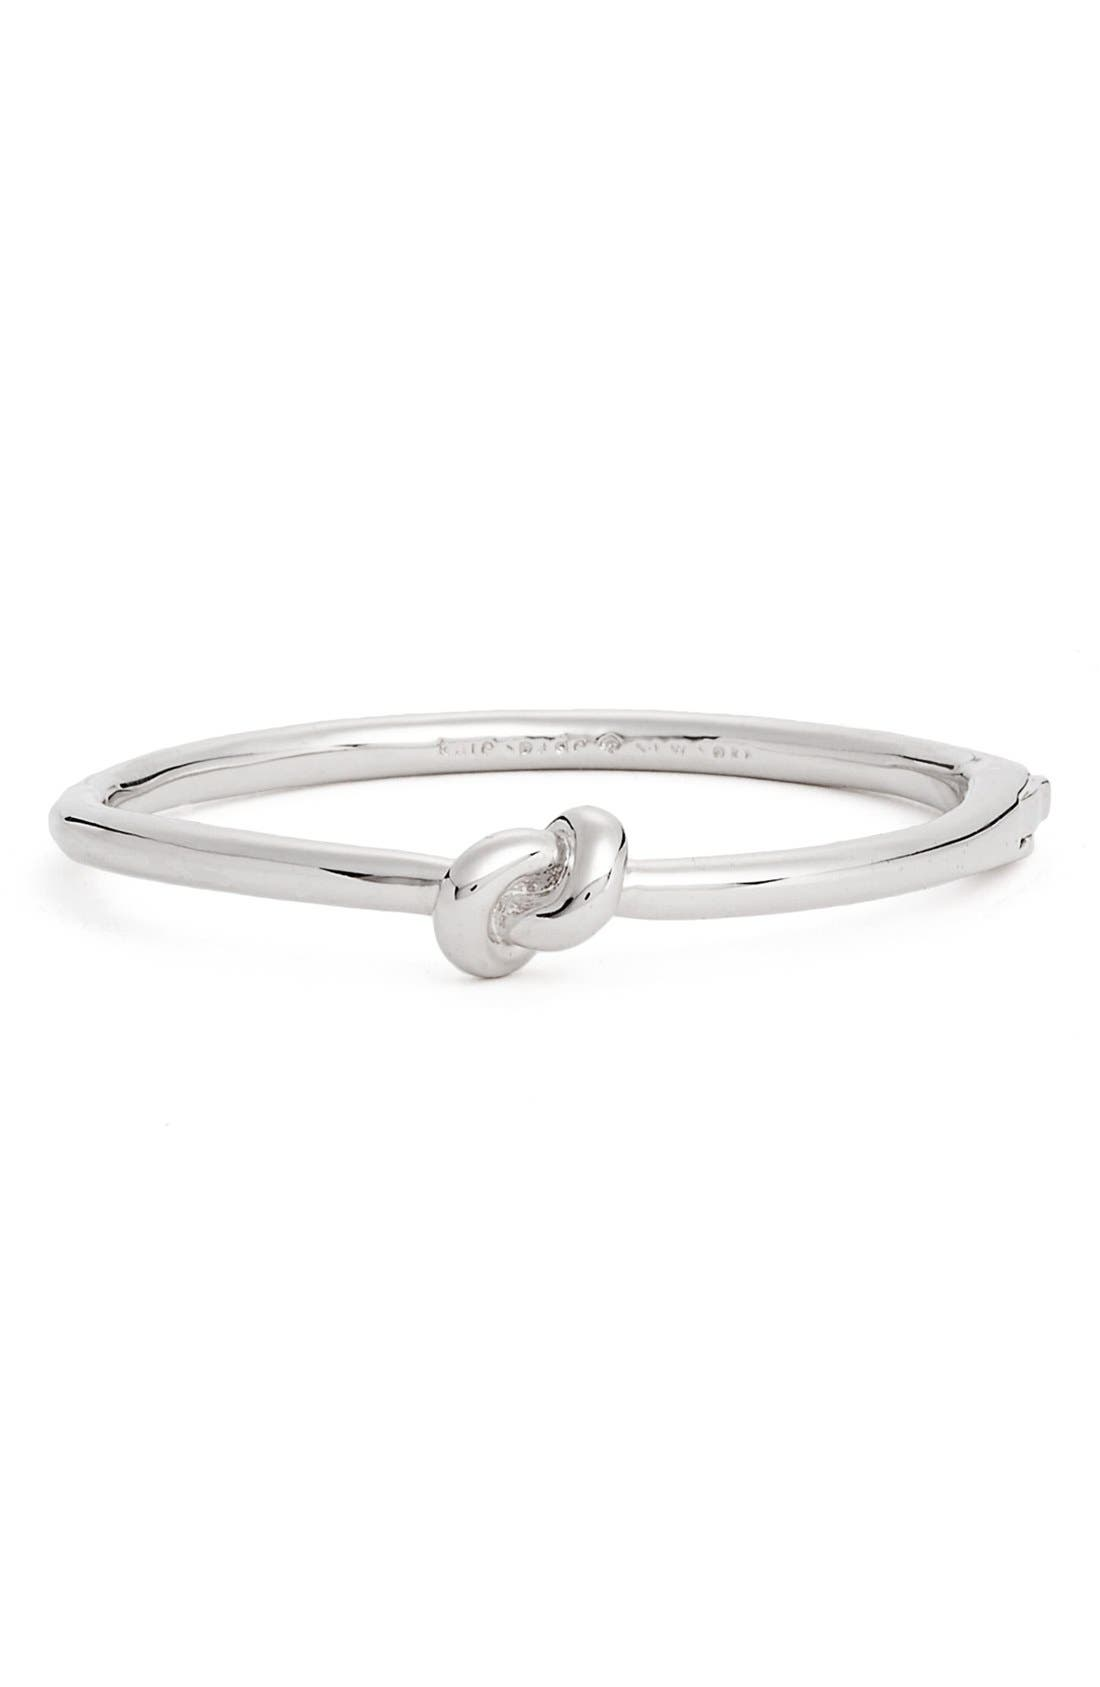 Alternate Image 1 Selected - kate spade new york 'sailors knot' bangle